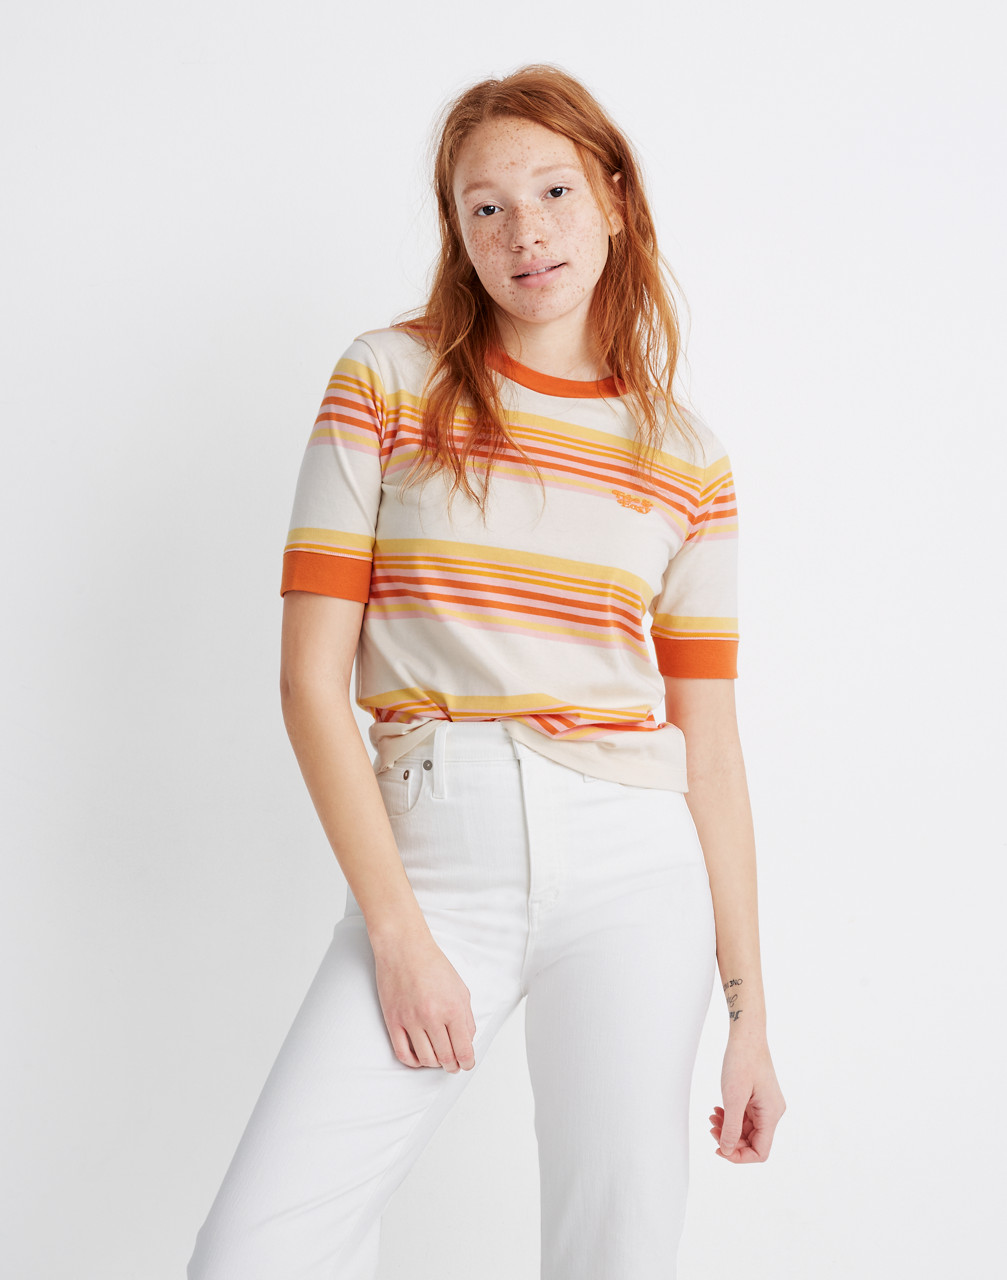 70s Outfits – 70s Style Ideas for Women Madewell x Free amp Easyreg Embroidered Relaxed Tee $32.99 AT vintagedancer.com